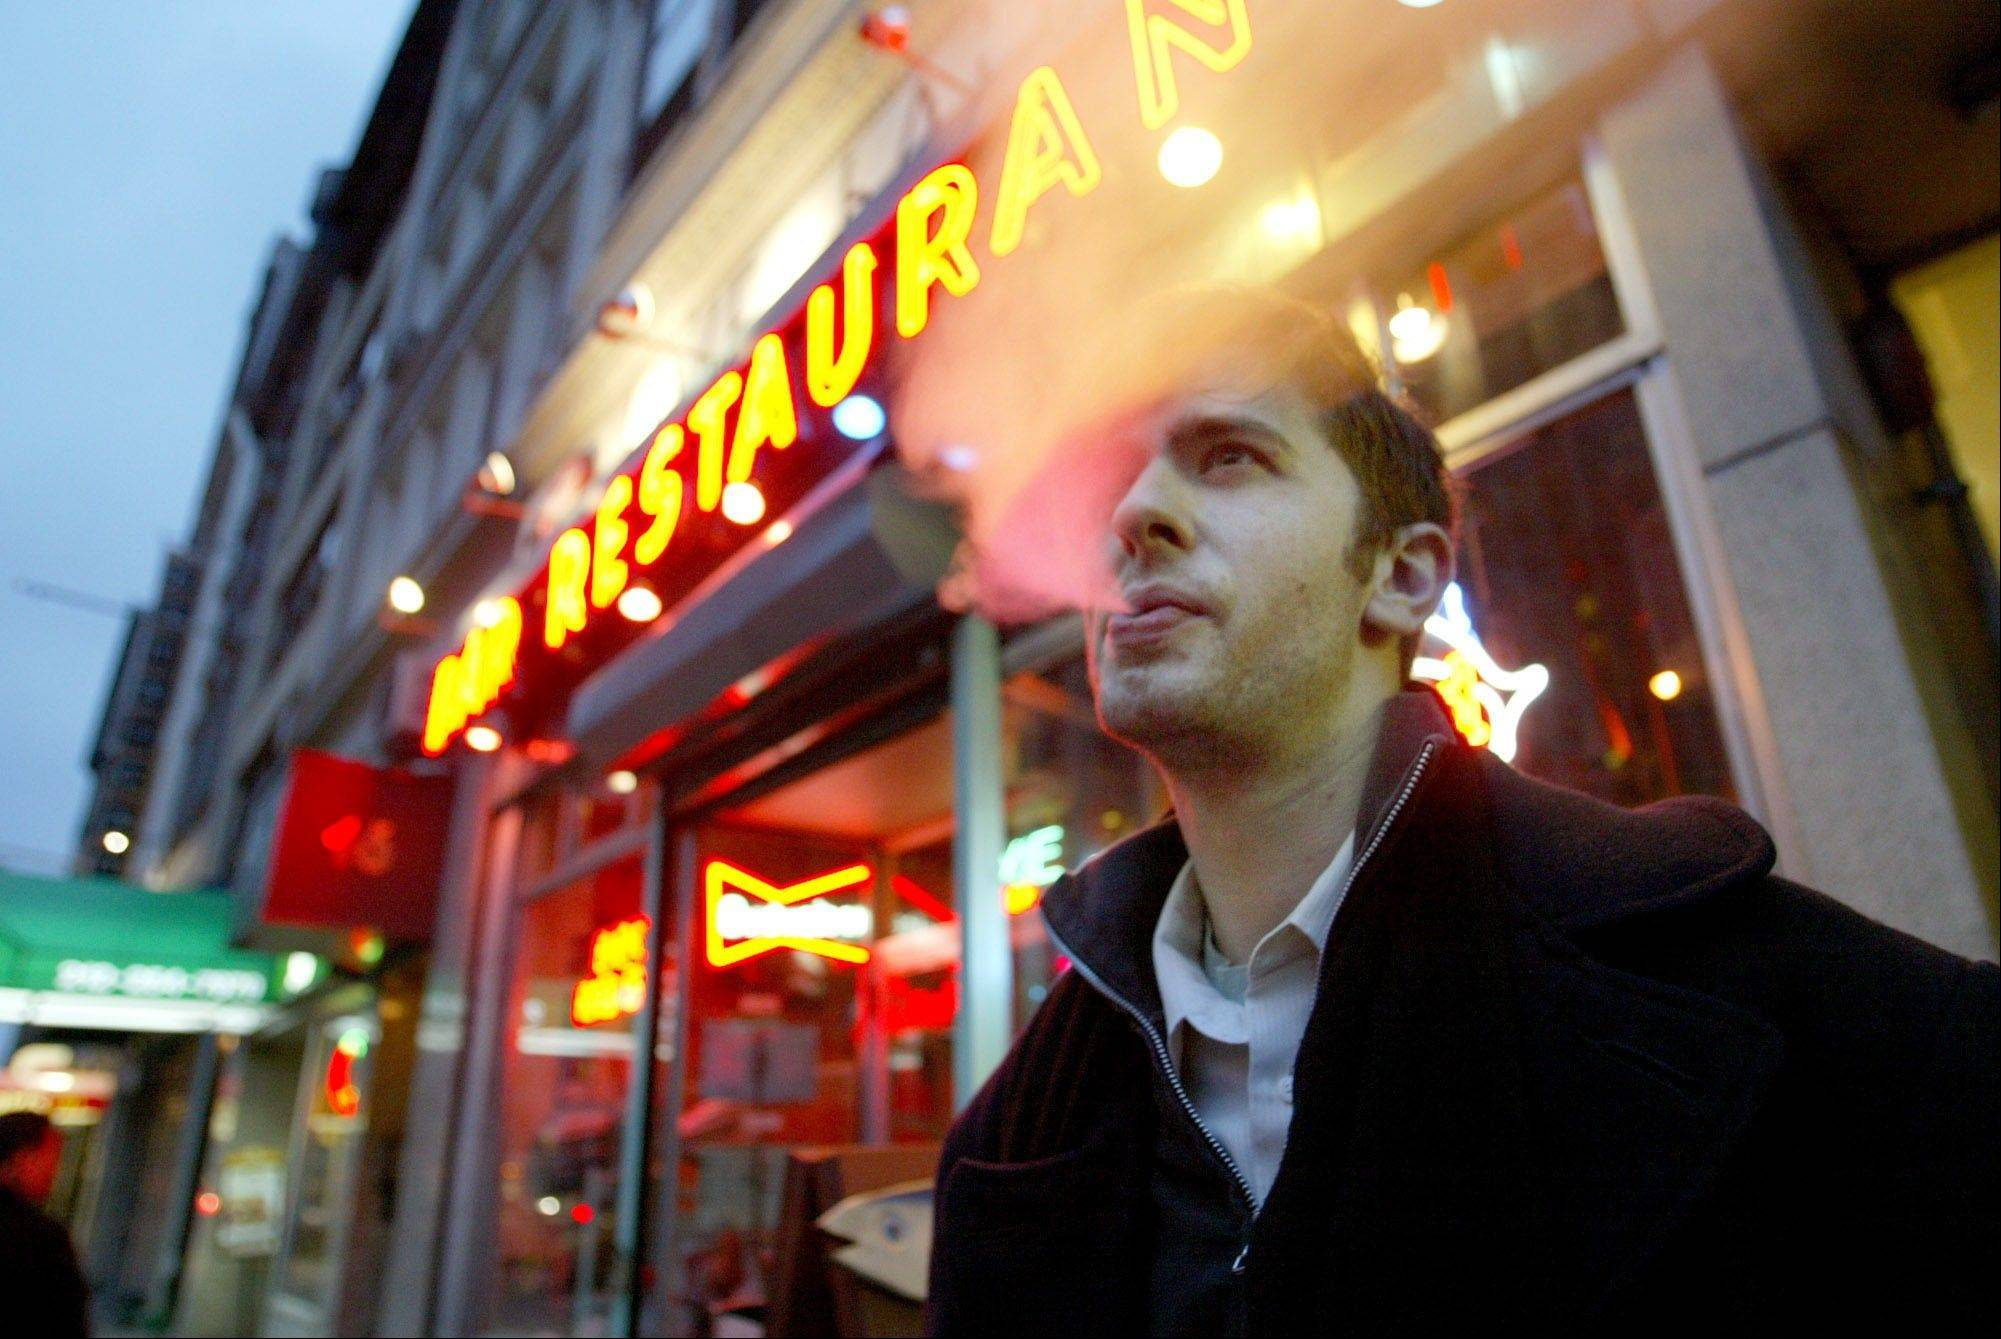 David Ozanich of Brooklyn smokes outside the Live Bait bar in New York after a city-wide ban on smoking in bars and restaurants went into effect.